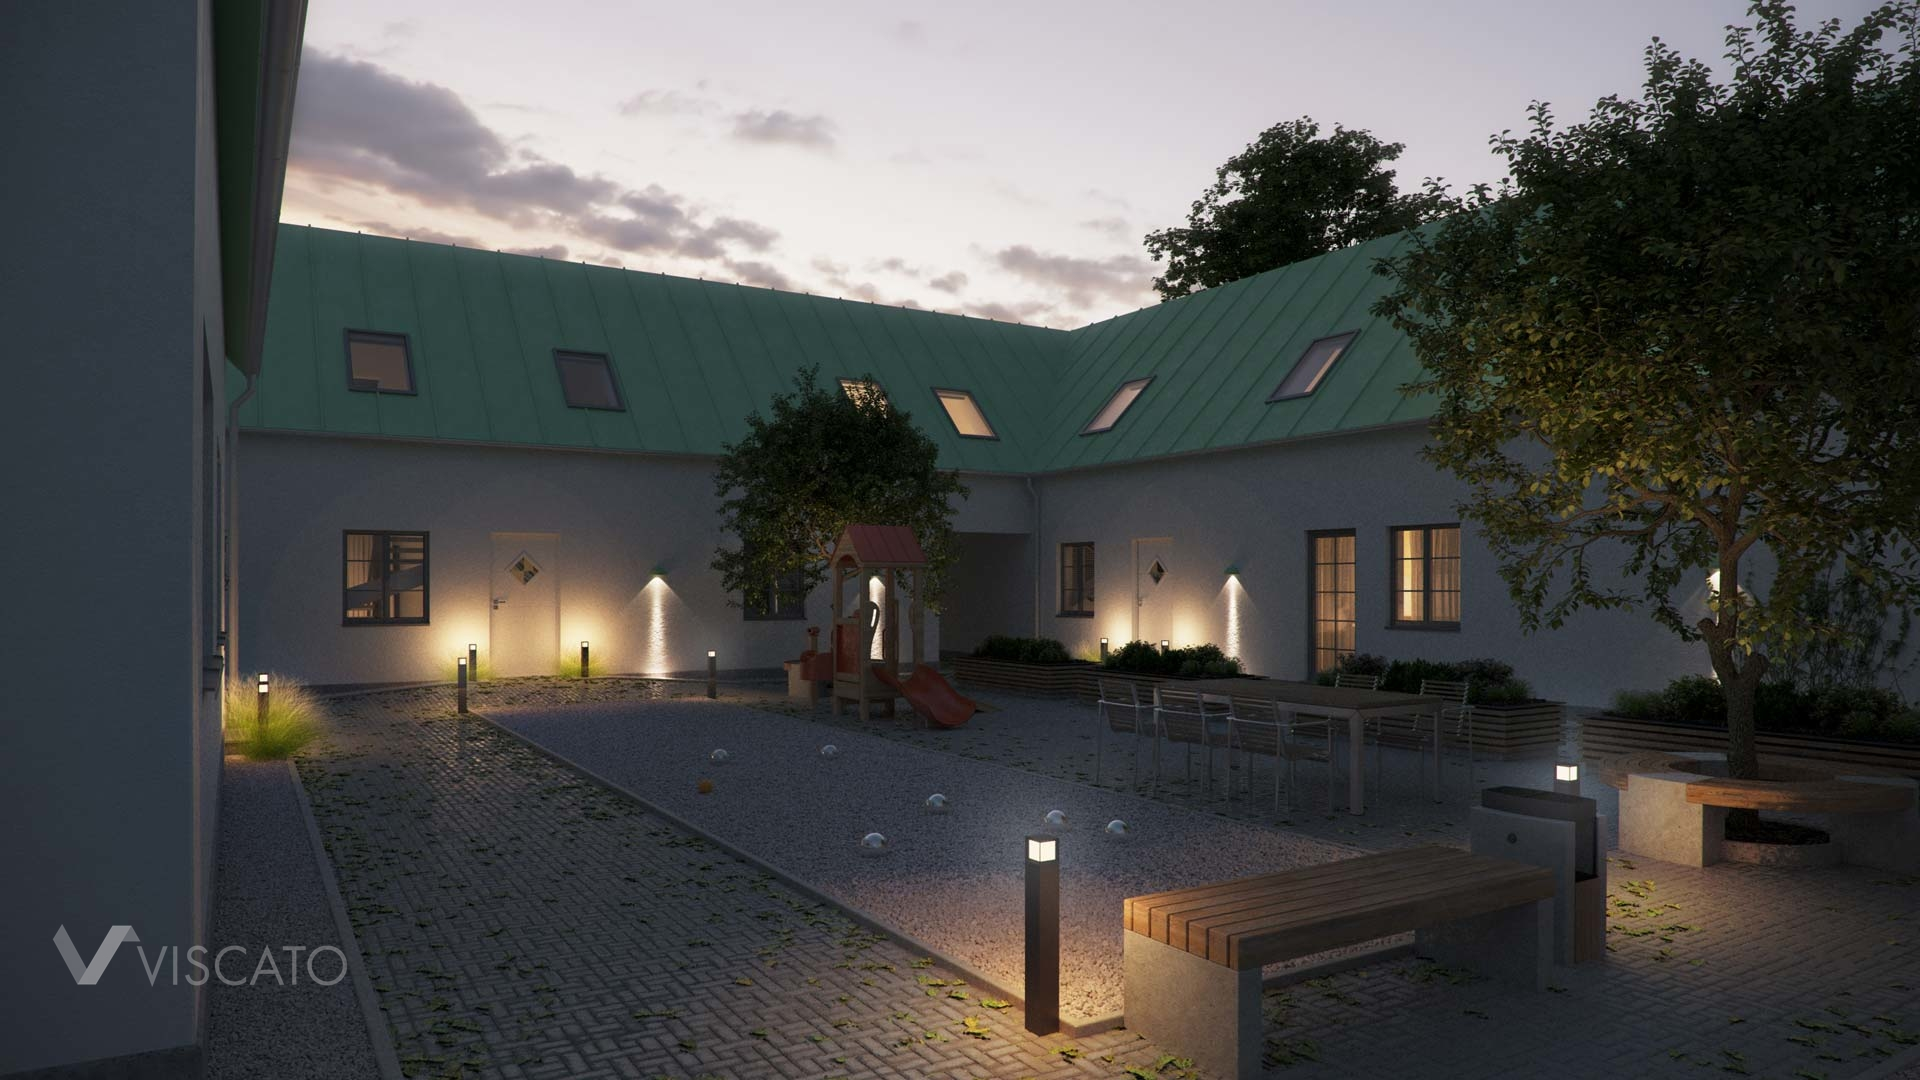 3D visualization of a courtyard with a playground and benches- evening view